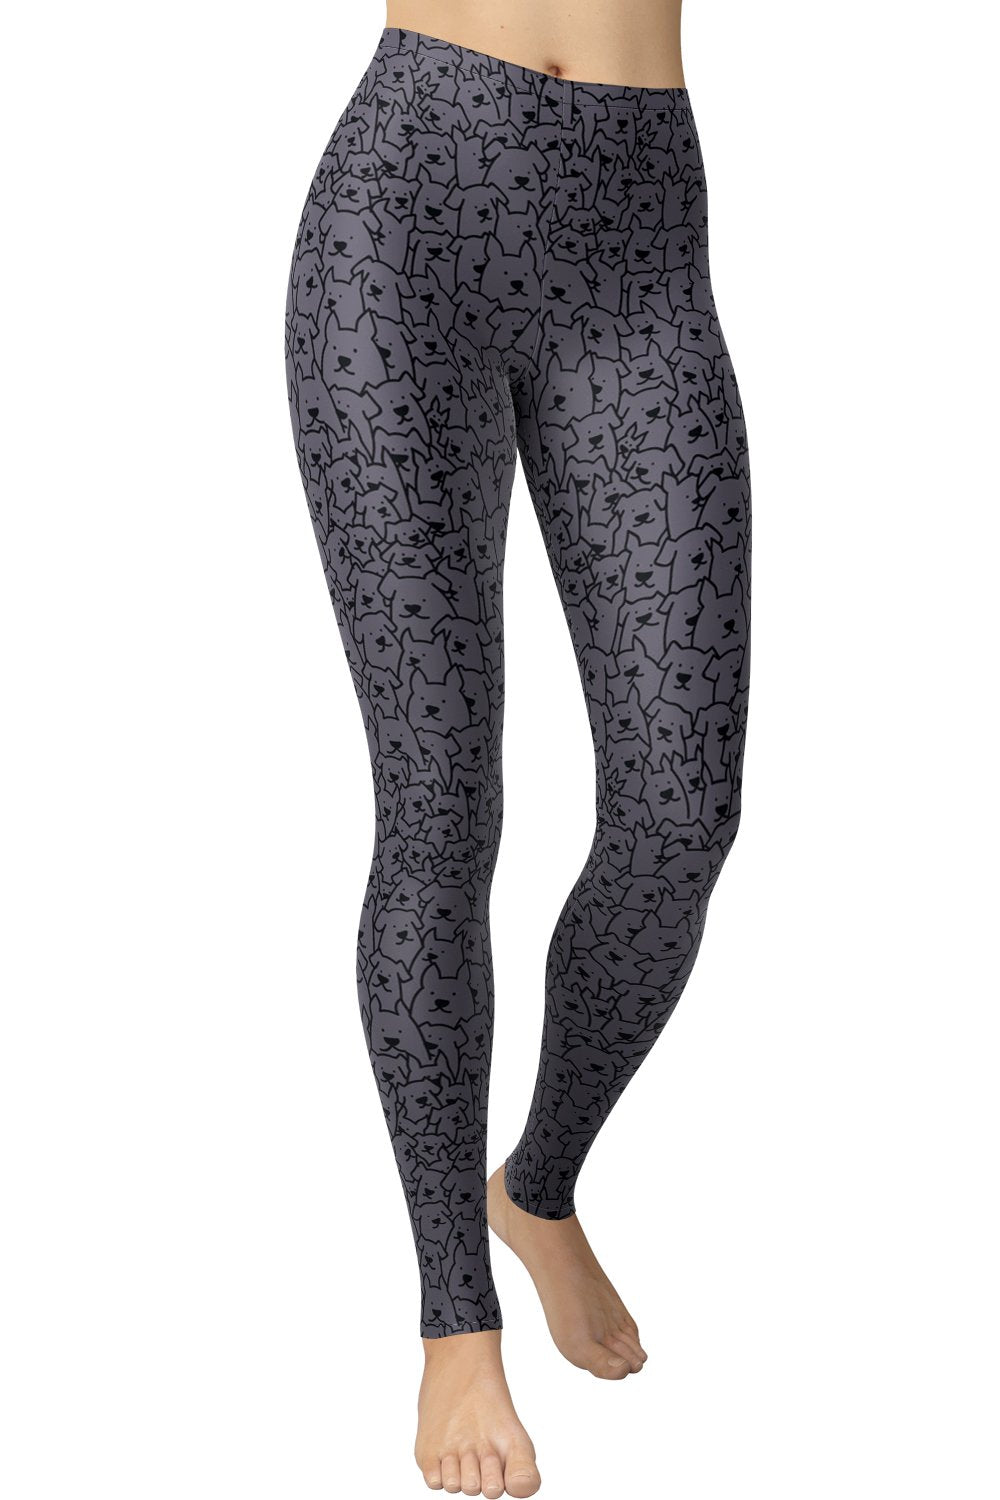 Printed Brushed Leggings - Wheres Puppy (Digital Print)